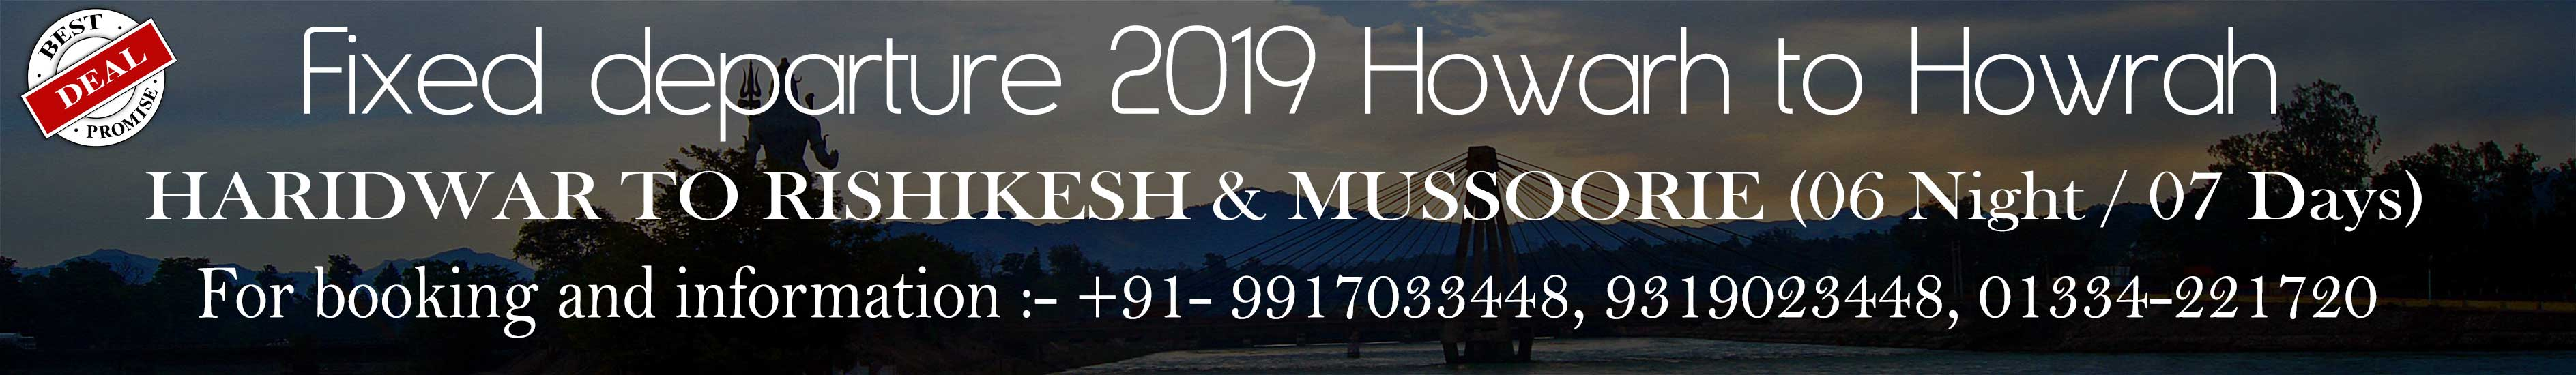 Uttarakhand fixed departure tour package from Howrah to Howrah